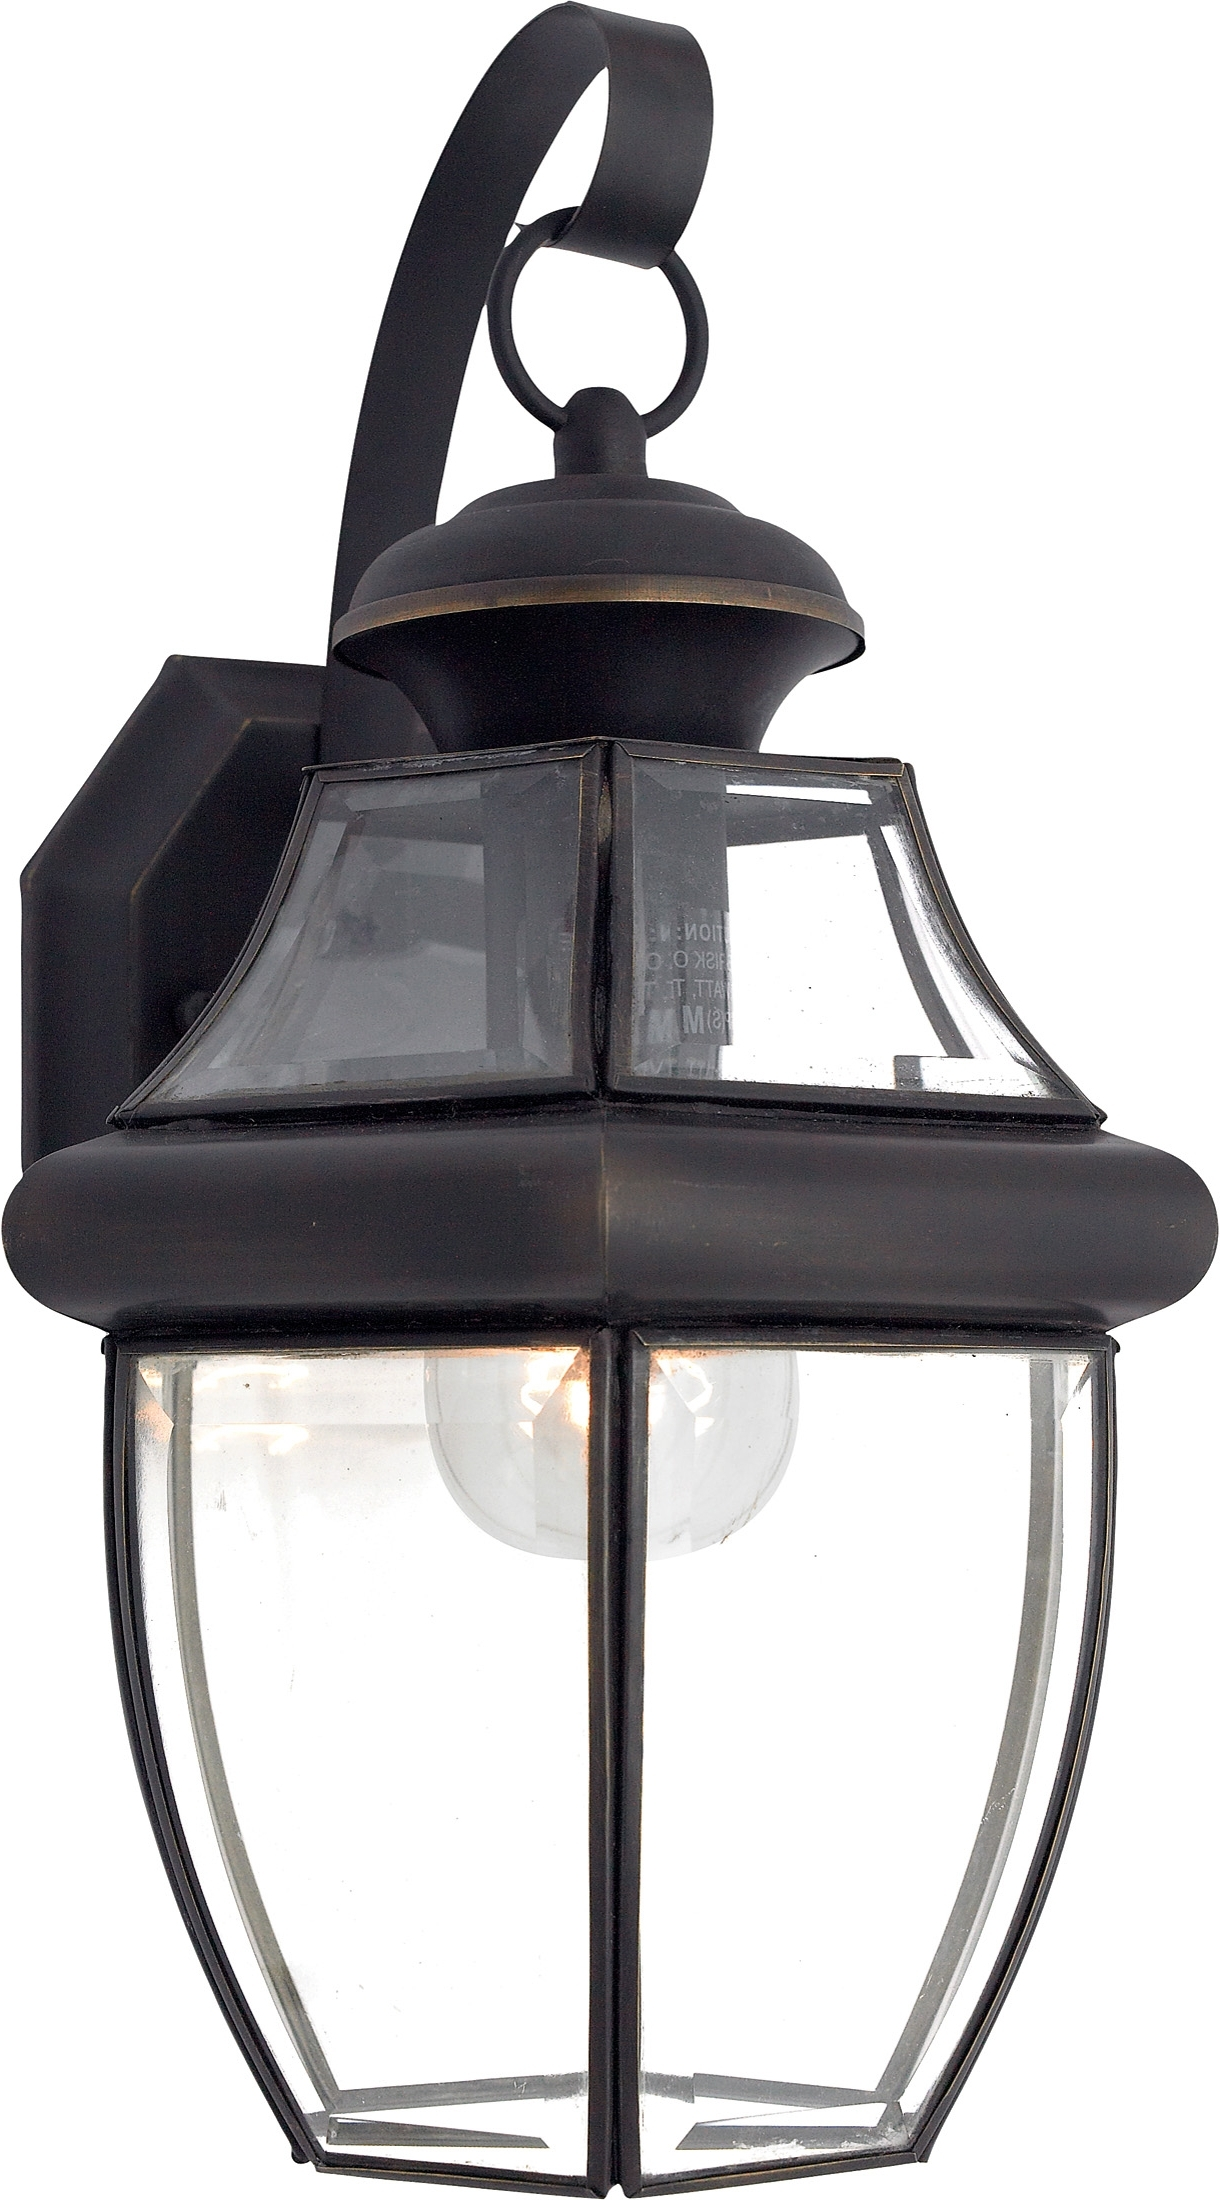 Traditional Outdoor Ceiling Lights With Regard To Most Recently Released Home Decor + Home Lighting Blog » Blog Archive » Quoizel Lighting (View 7 of 20)